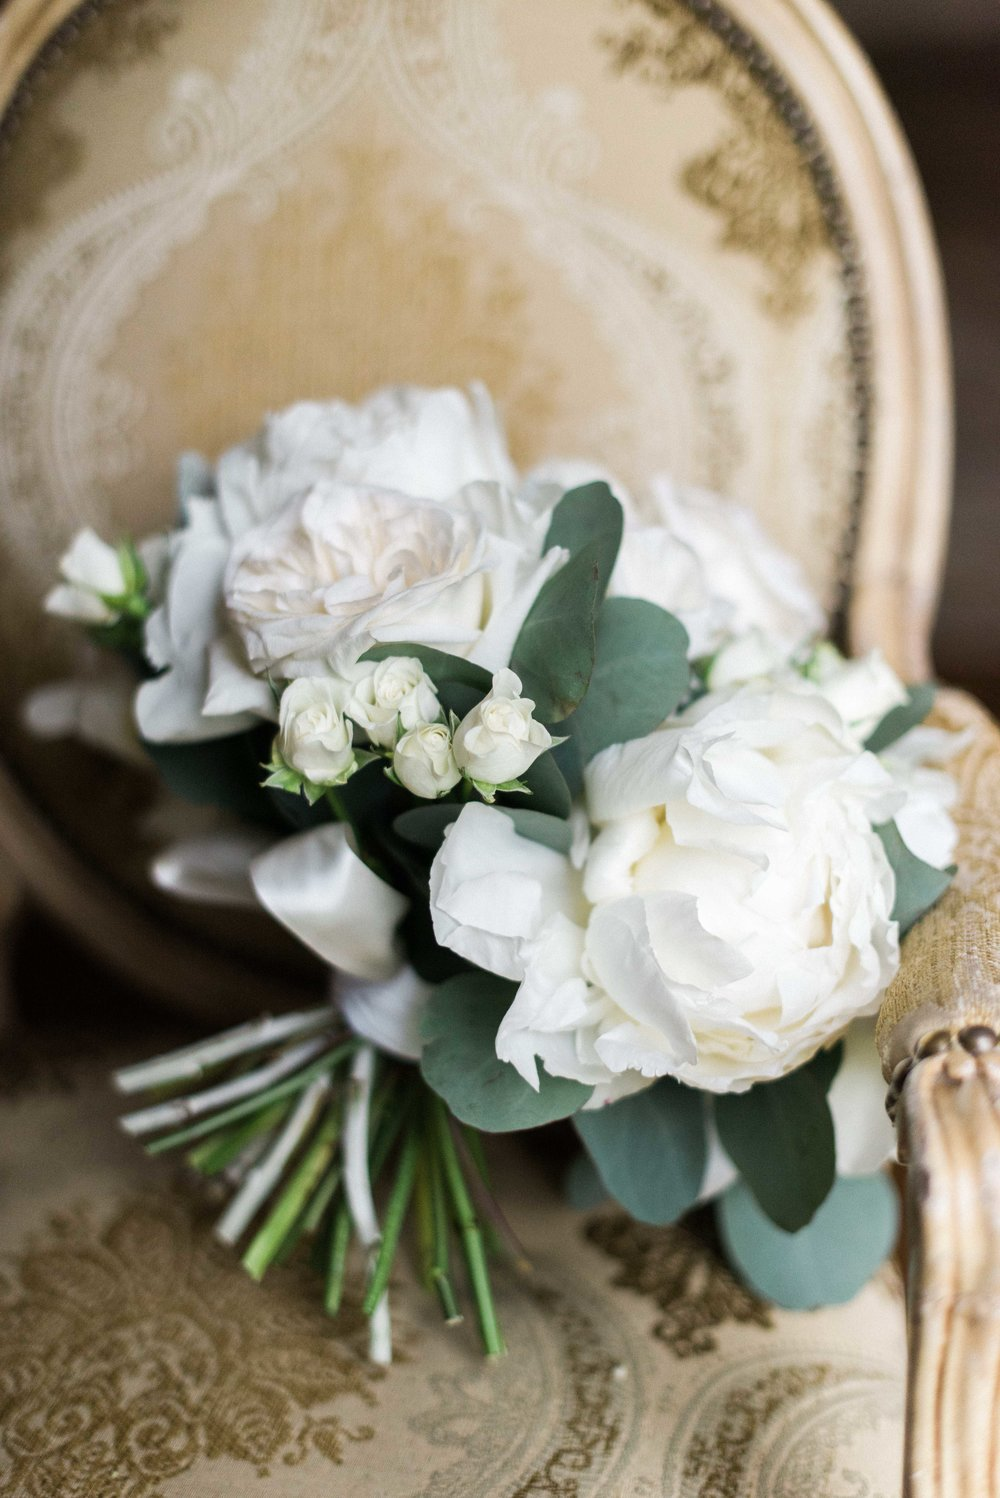 Fine-Art-Film-Houston-Wedding-Photographer-Best-Top-Luxury-Texas-Austin-Dallas-Destination-Dana-Fernandez-Photography-River-Oaks-Country-Club-South-Main-Baptist-Ceremony-Reception-Wedding-29.jpg